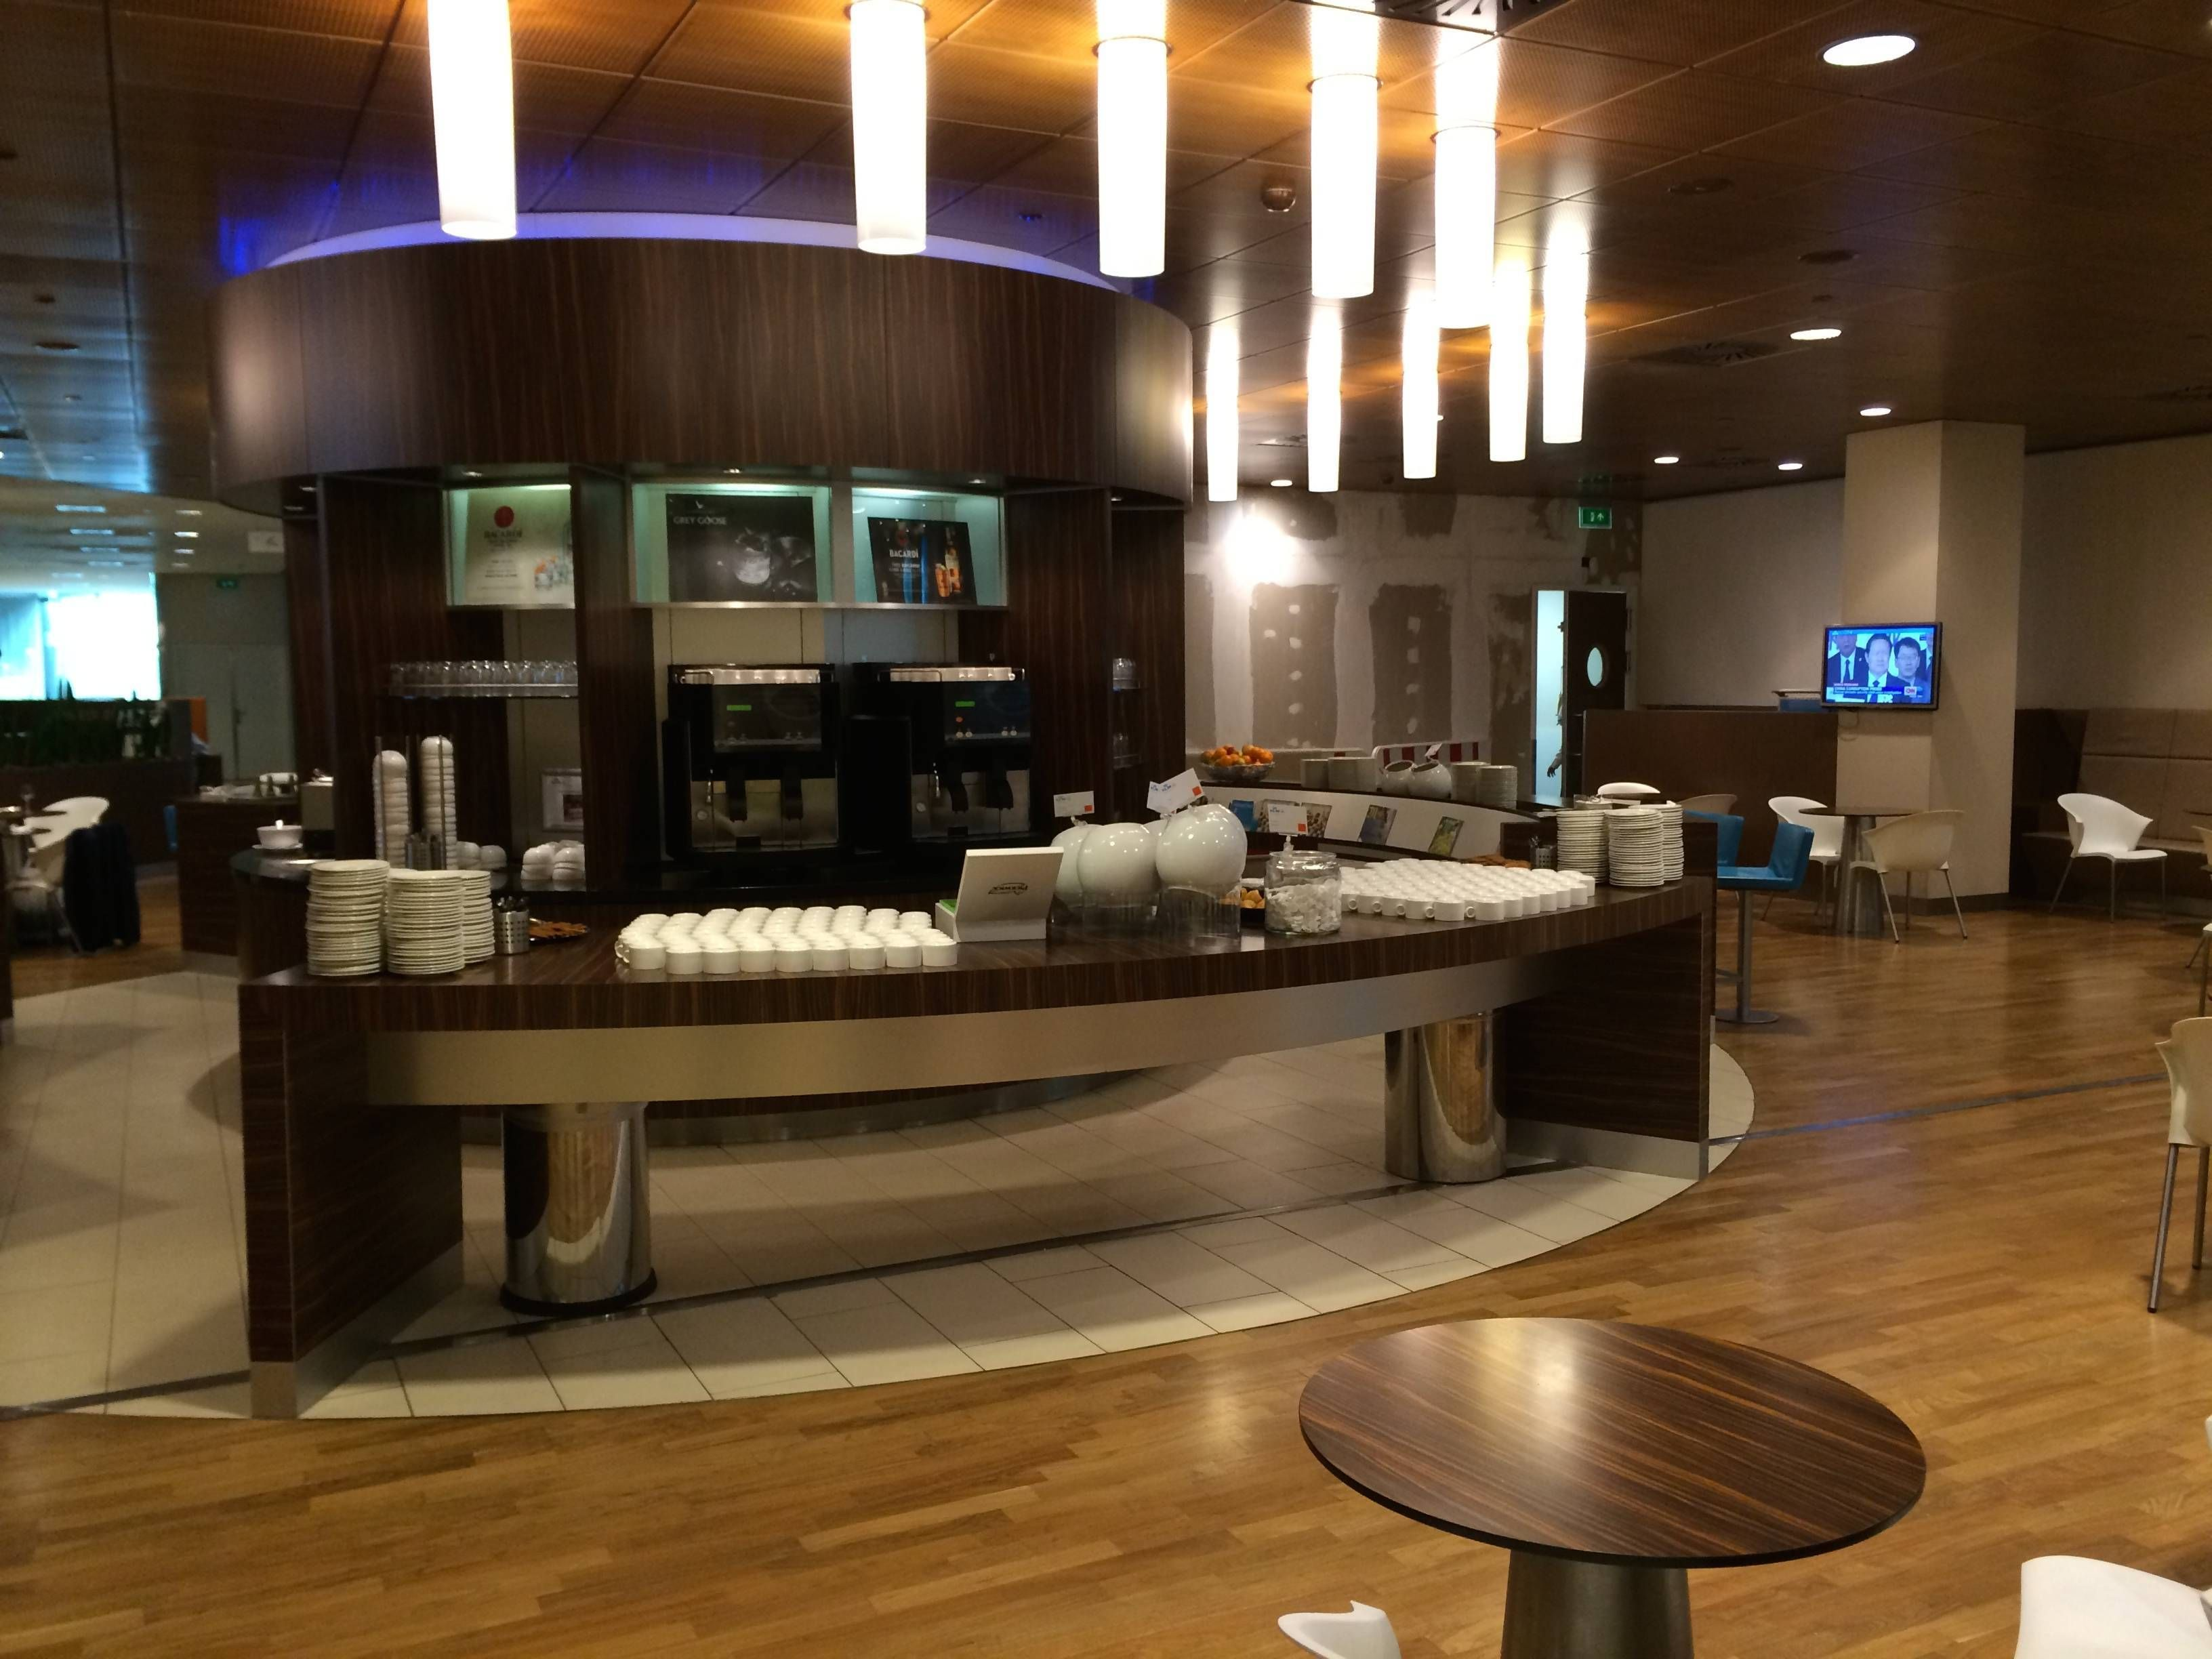 klm crown lounge sala vip amsterdam